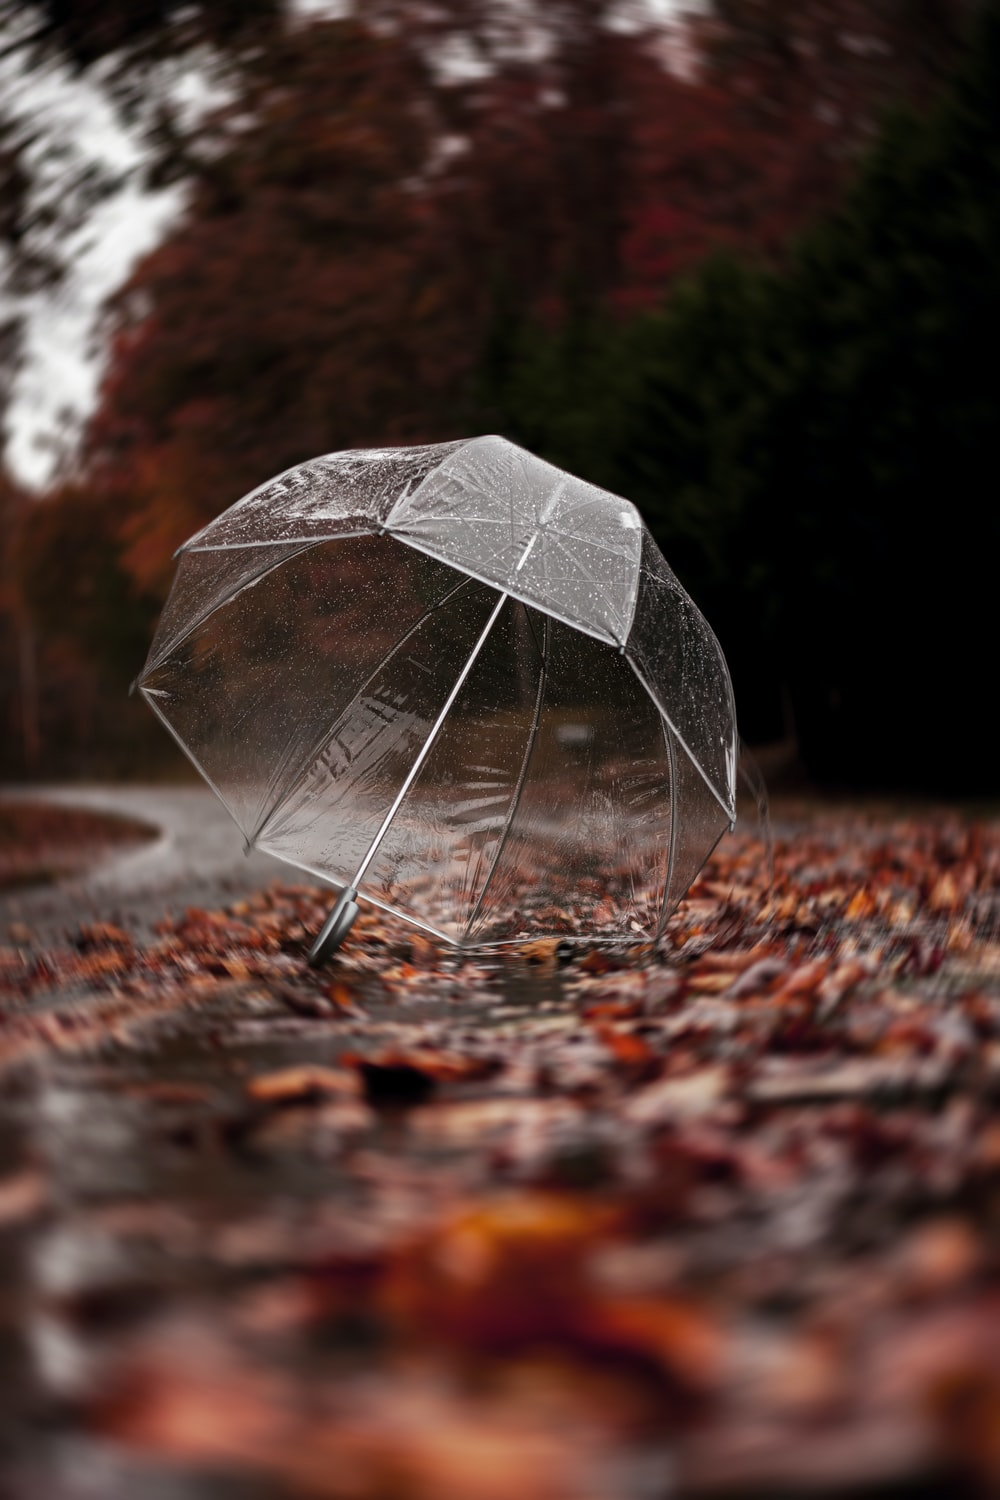 clear plastic umbrella on road filled with leaves